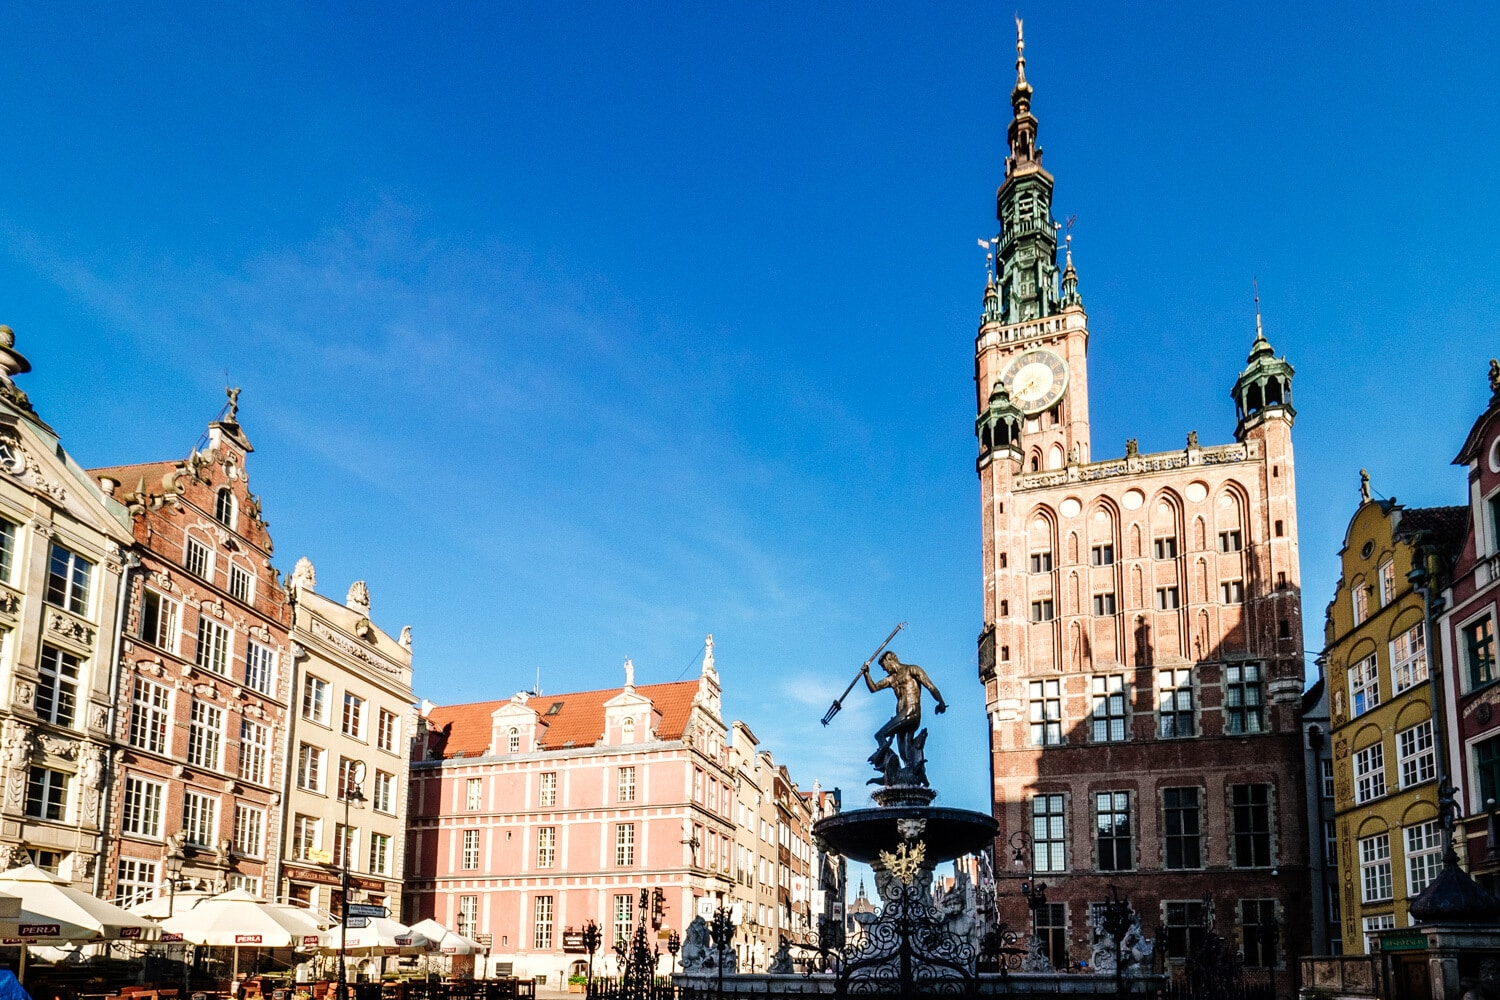 Gdansk Town Hall and Fountain of Neptune